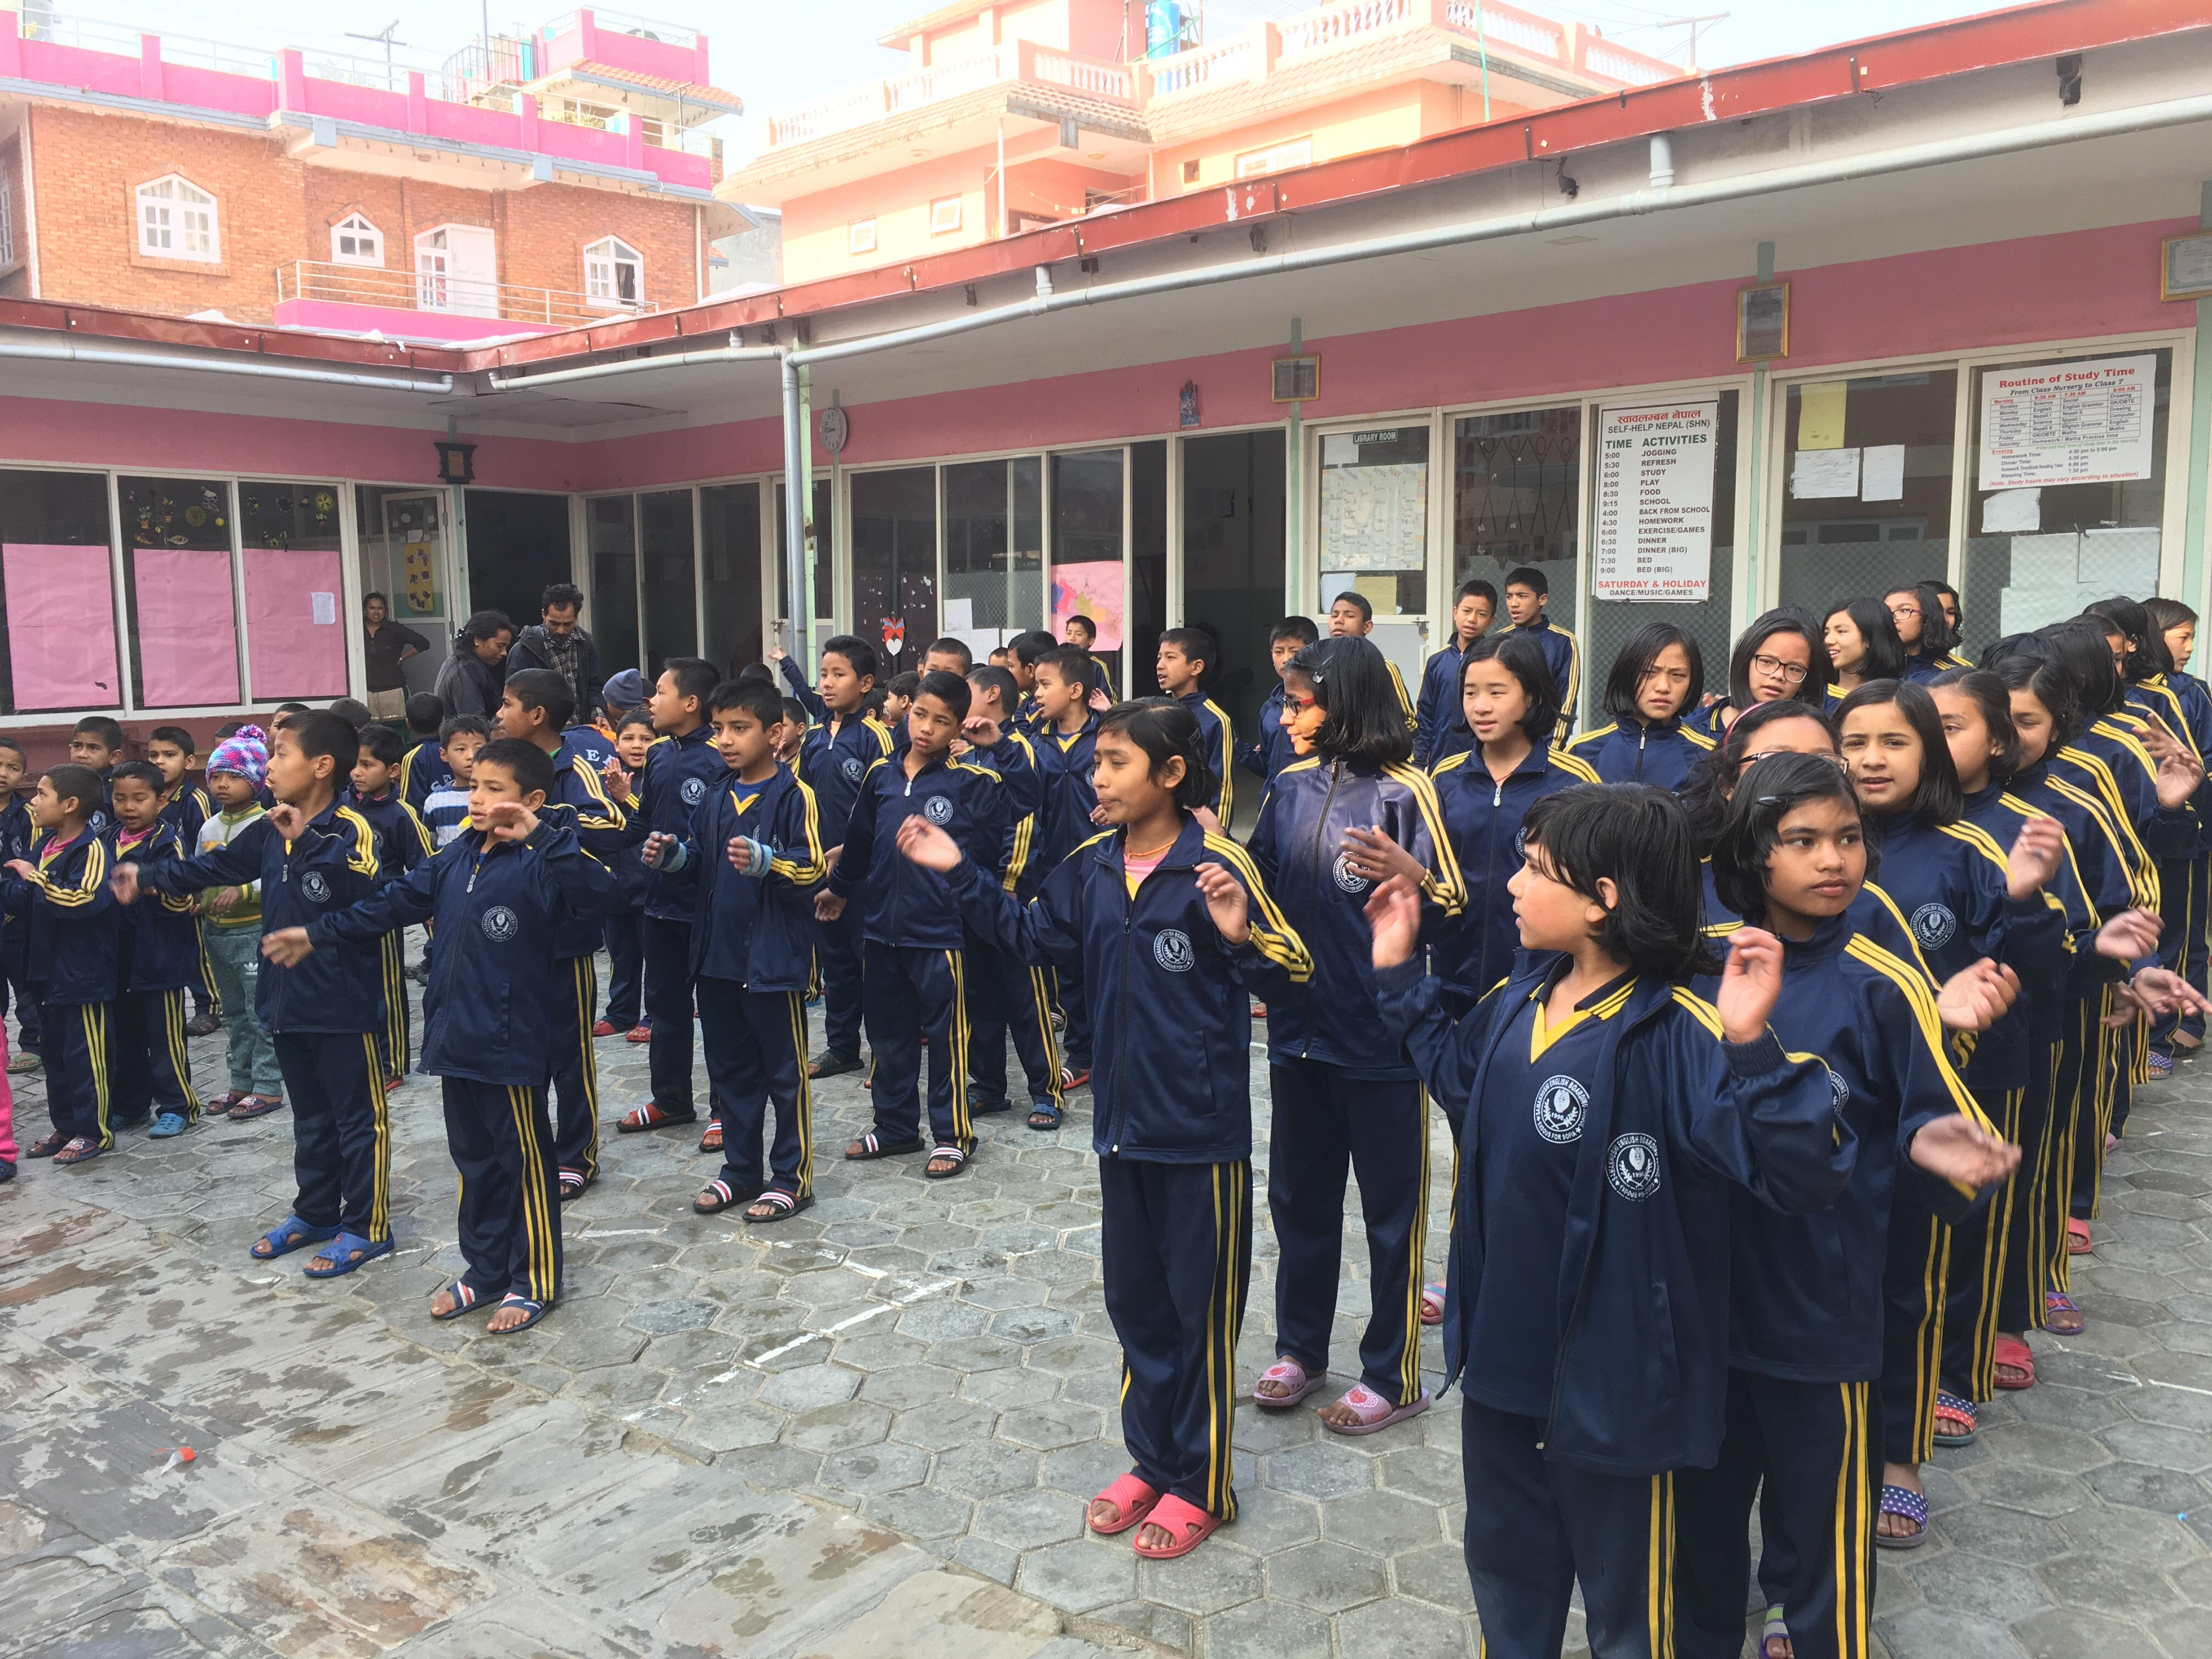 Children at Home of Hope in Kathmandu, Nepal gather in the courtyard for their morning routines before school.